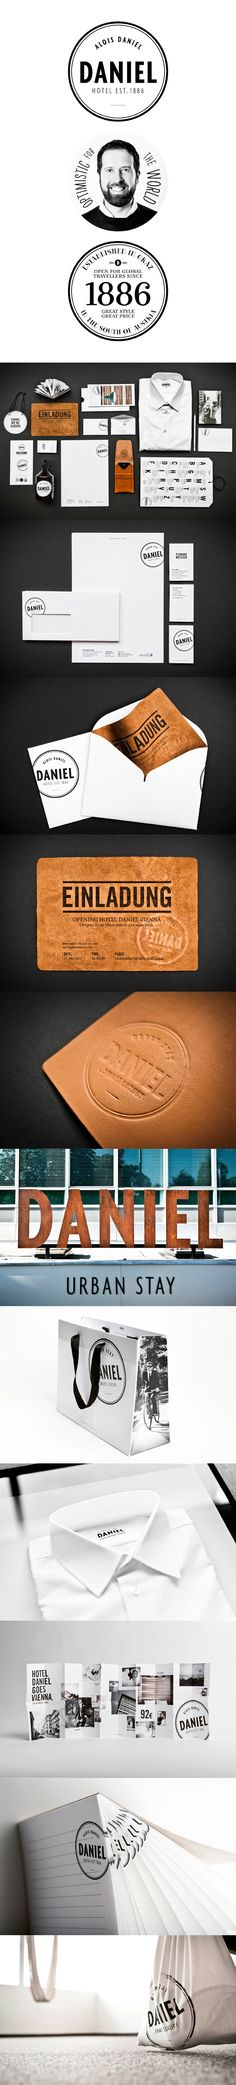 Hotel Daniel by Moodley Brand Identity | #stationary #corporate #design #corporatedesign #identity #branding #marketing < repinned by www.BlickeDeeler.de | Take a look at www.LogoGestaltung-Hamburg.de